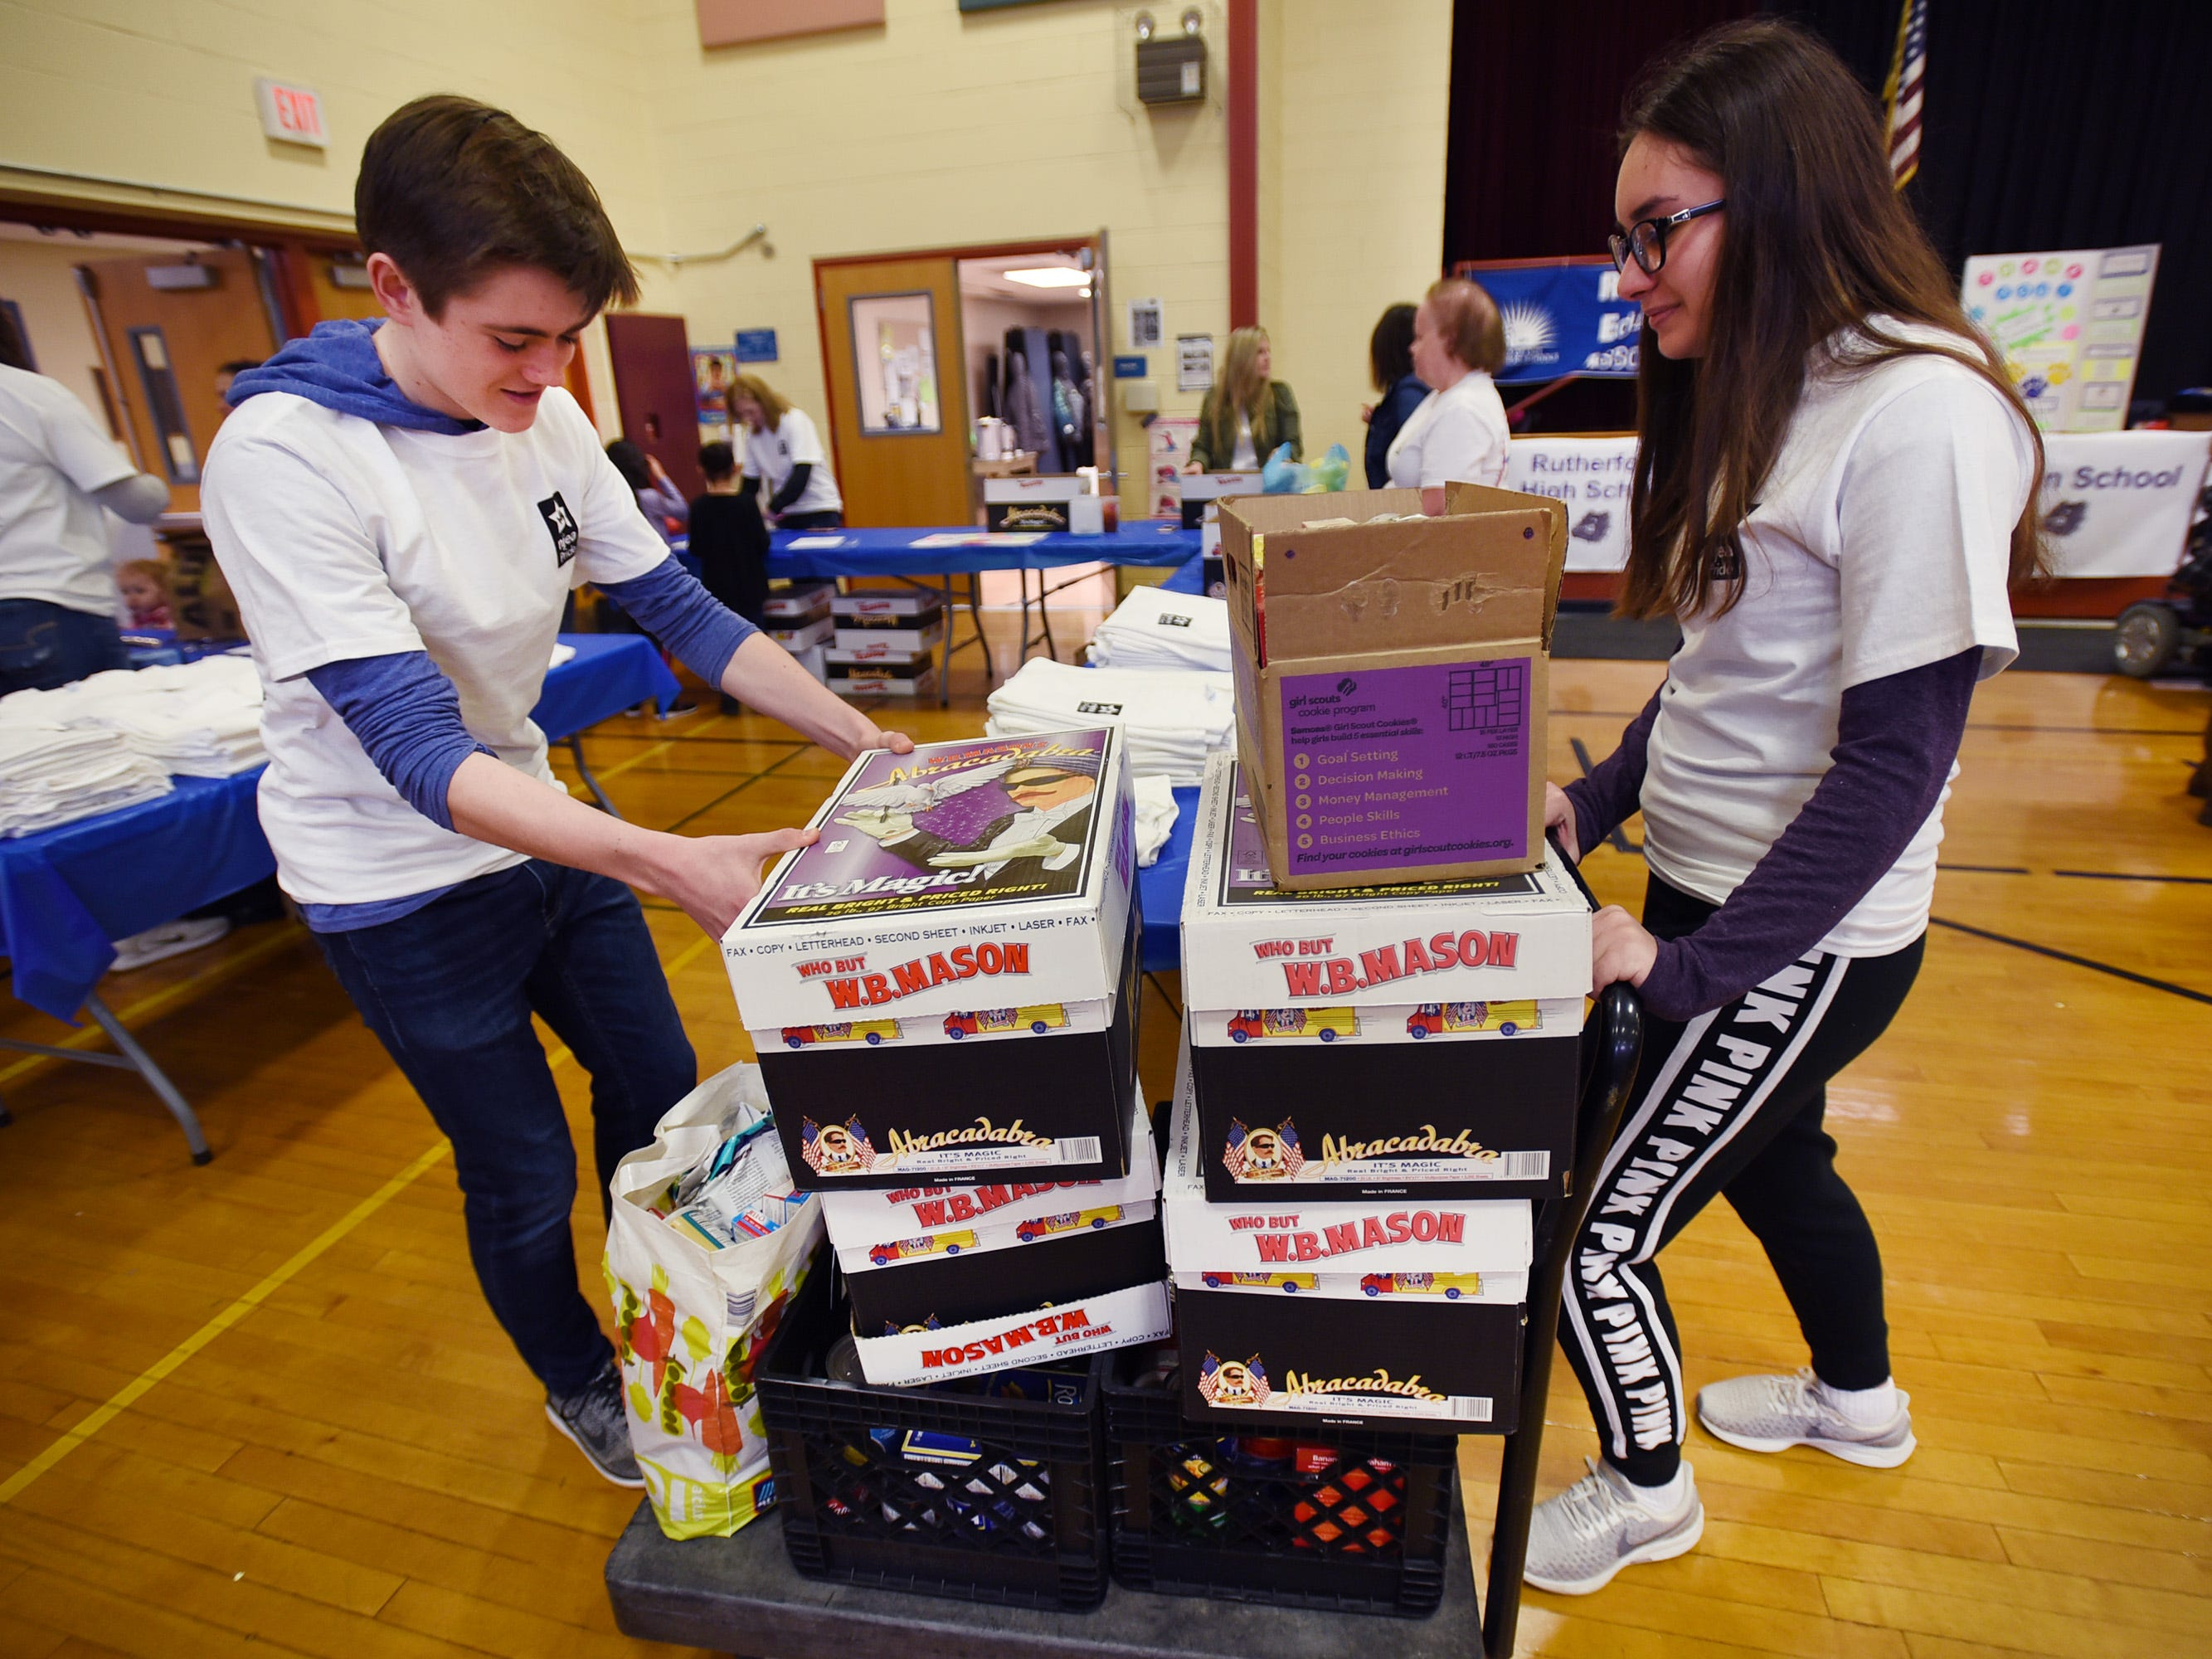 High School volunteer students Shane Kelly and Gabriela Tomczak push a cart full of donated food during the 3rd annual March Madness Food & Fun Day to benefit the Rutherford Food Pantry hosted by the Rutherford Education Association at Washington School in Rutherford on 03/23/2019.